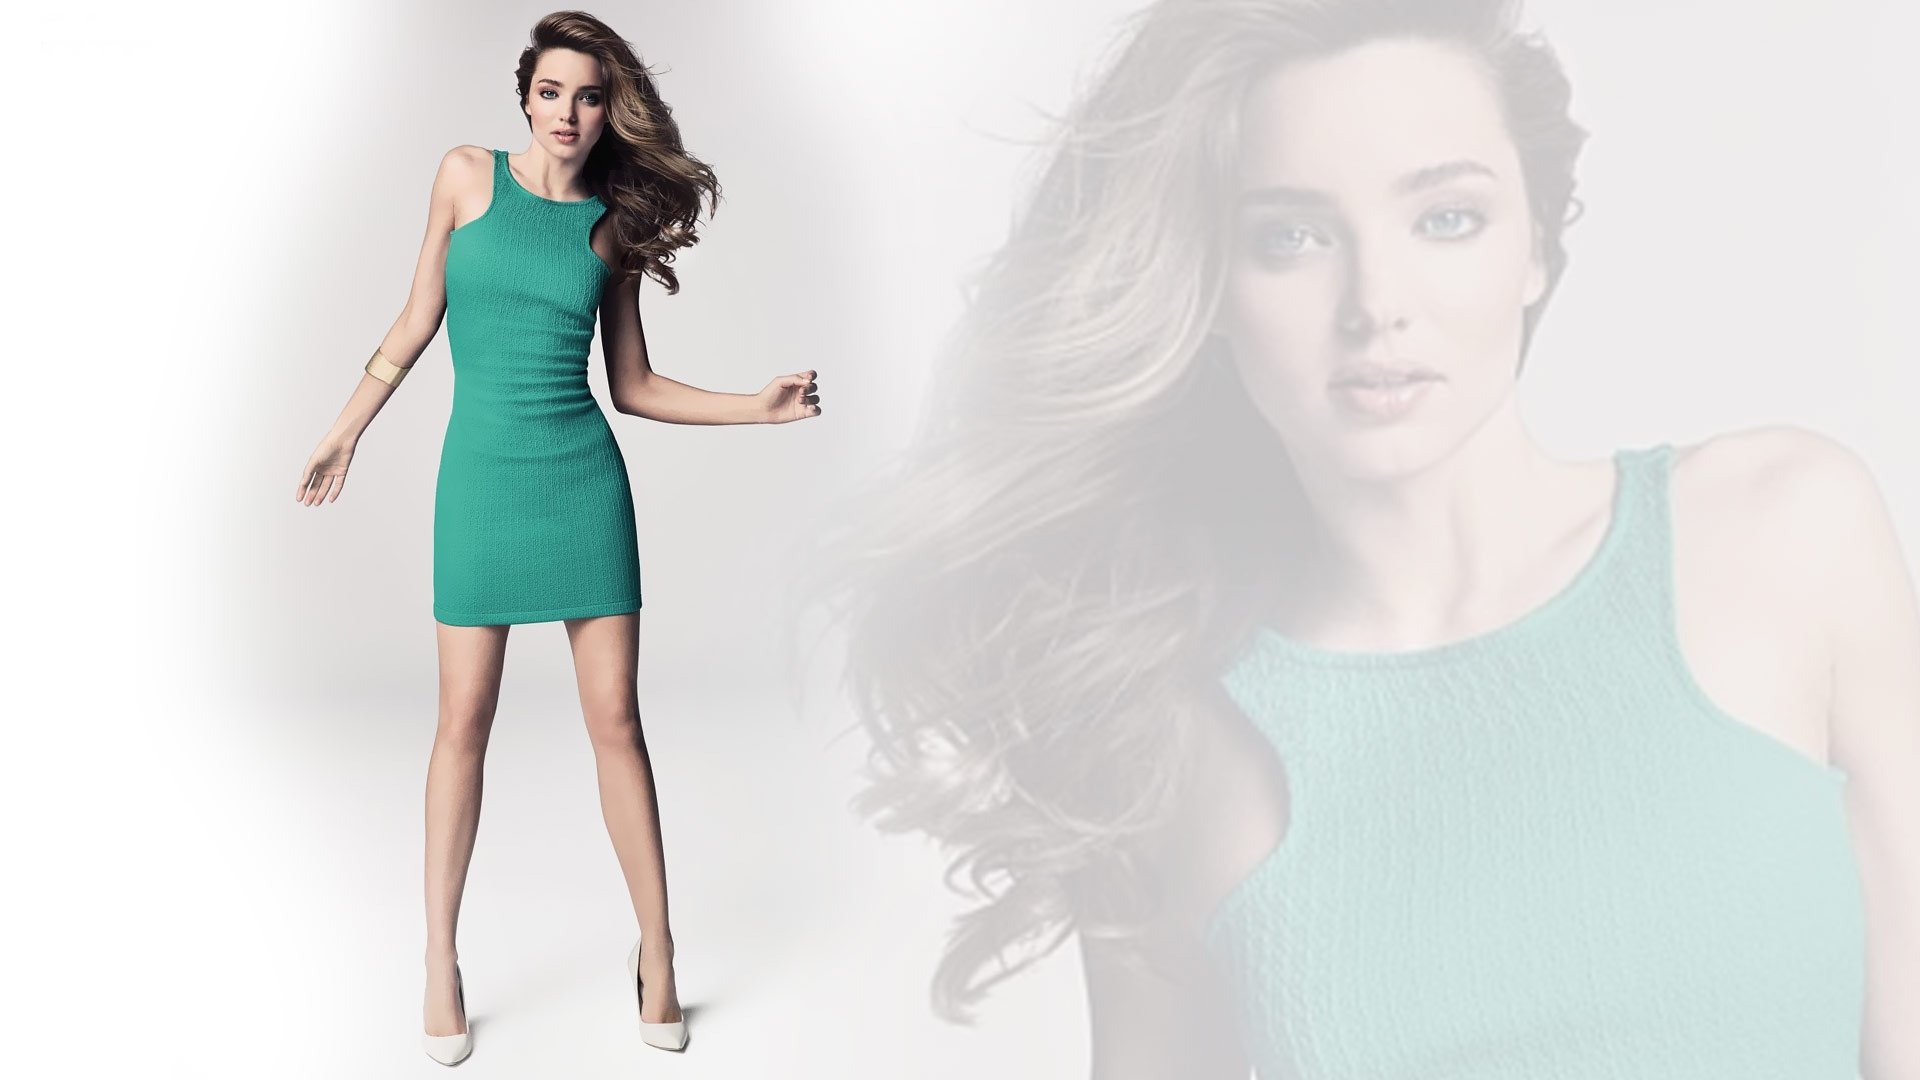 Miranda Kerr High Definition Wallpaper - Wallpaper, High ...